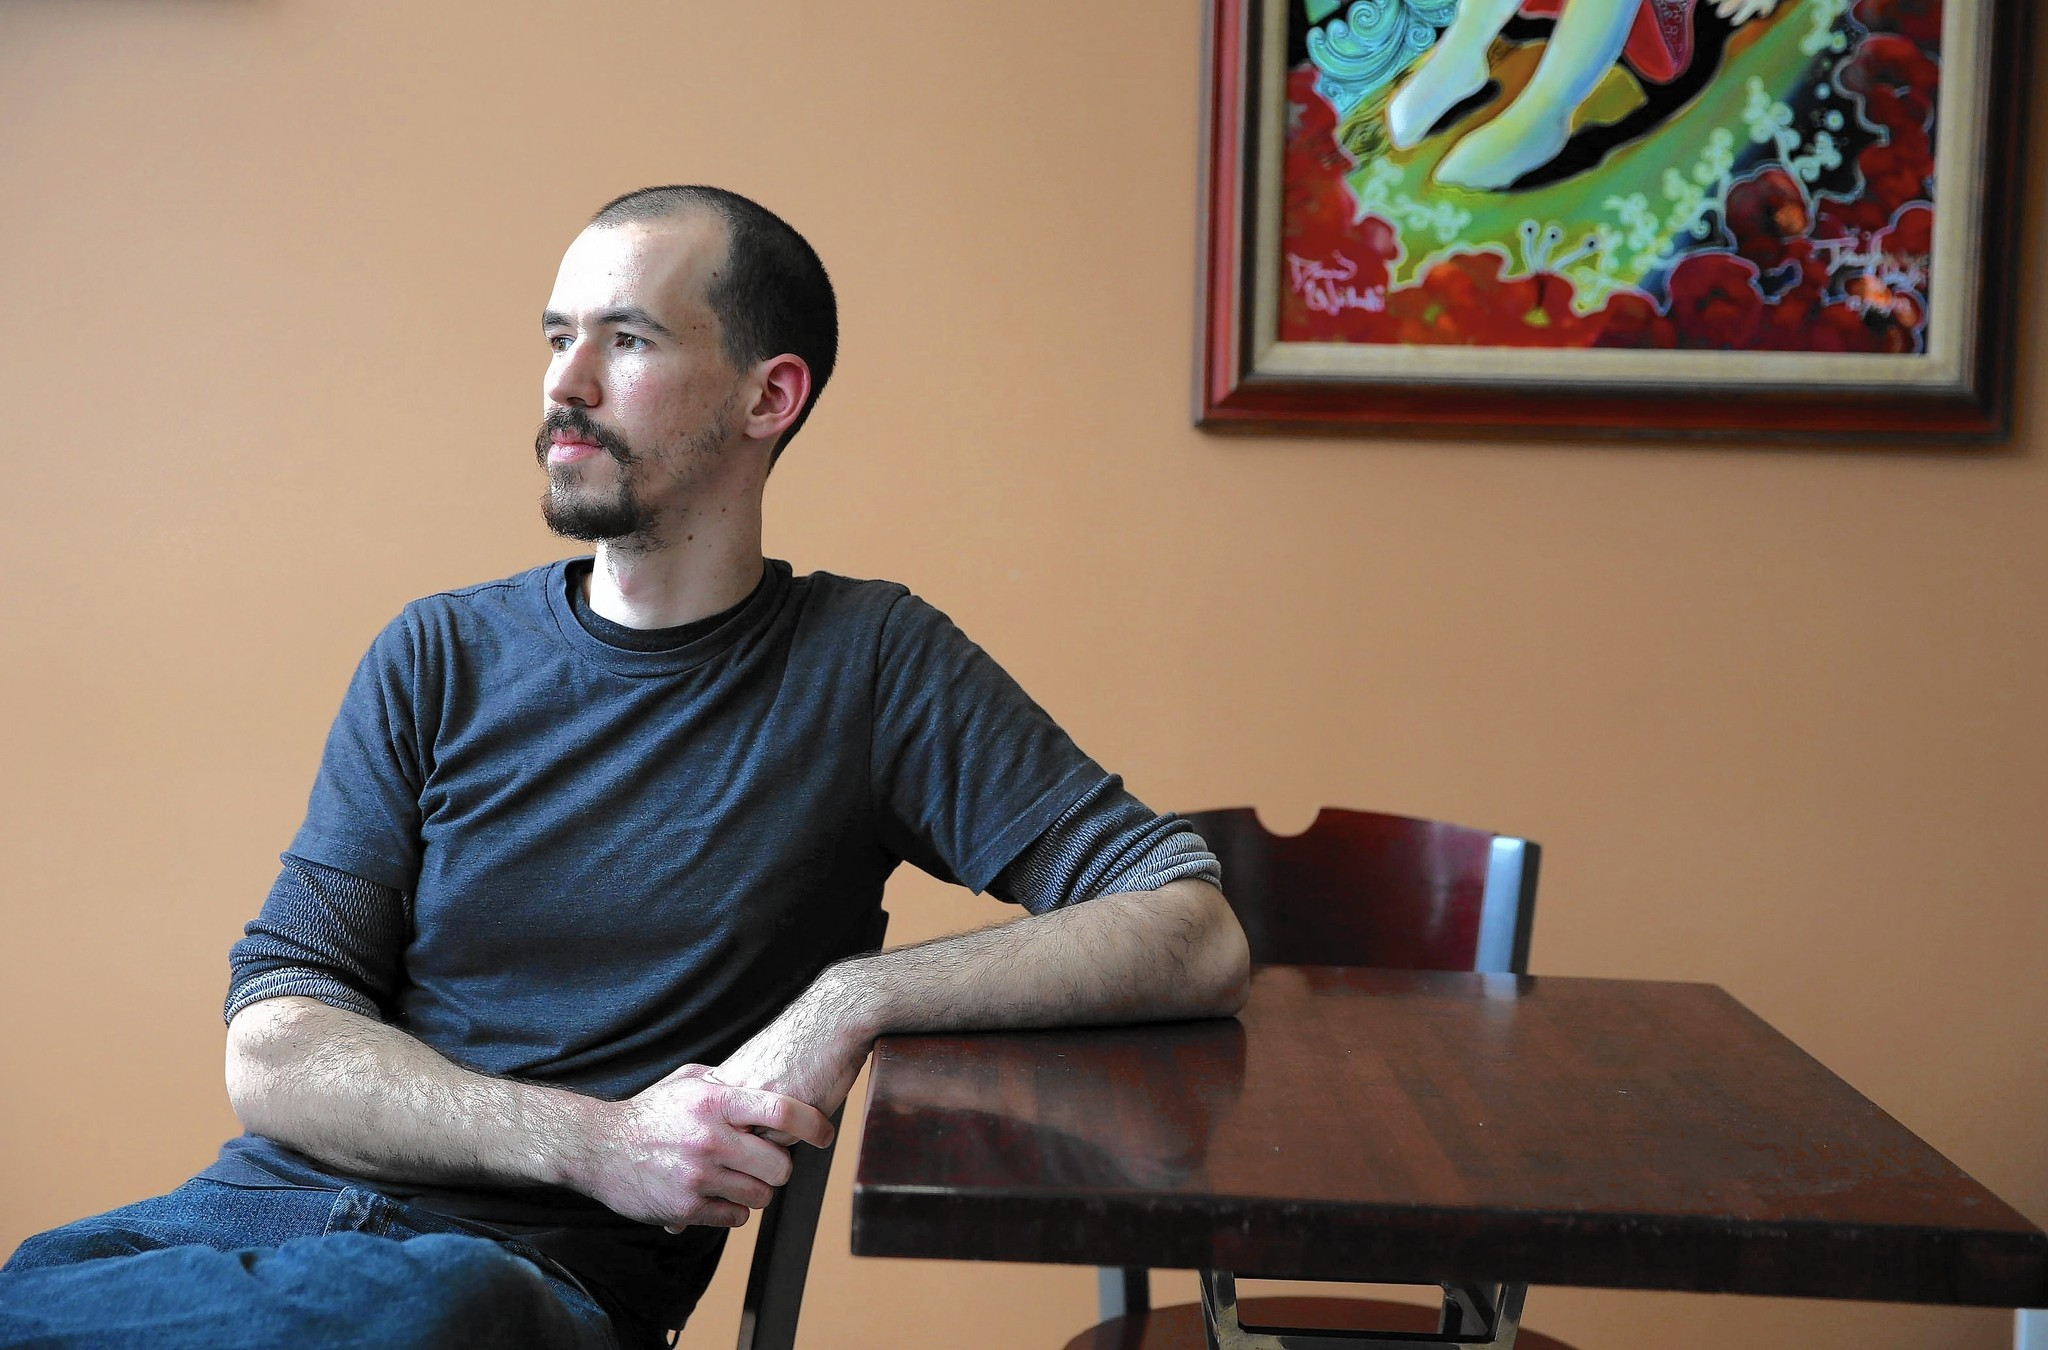 A Beurrage of ambition at Pilsen bakery